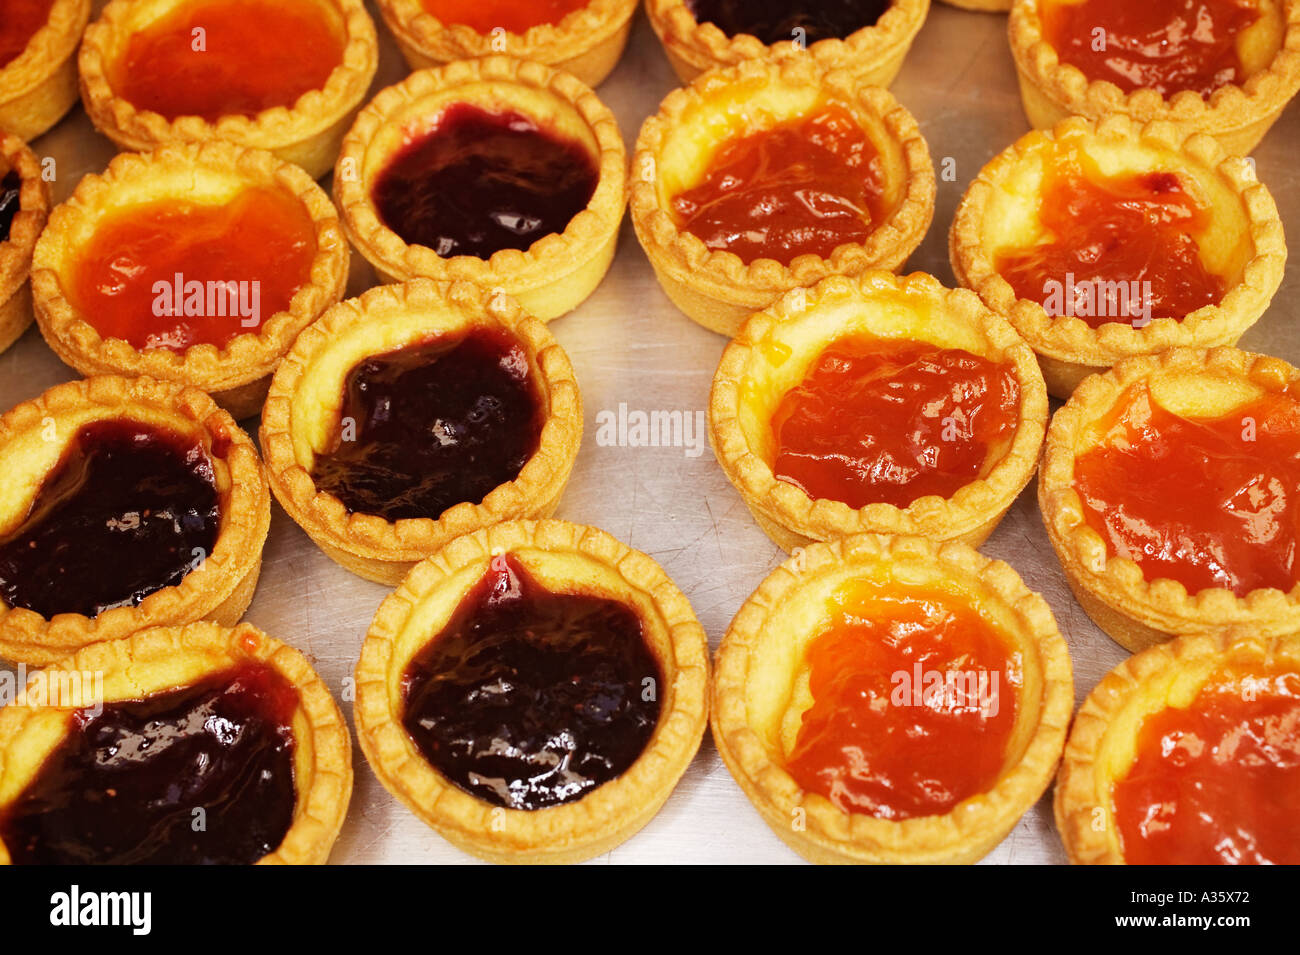 Pastry Filled With Marmalade Tuscany Italy - Stock Image